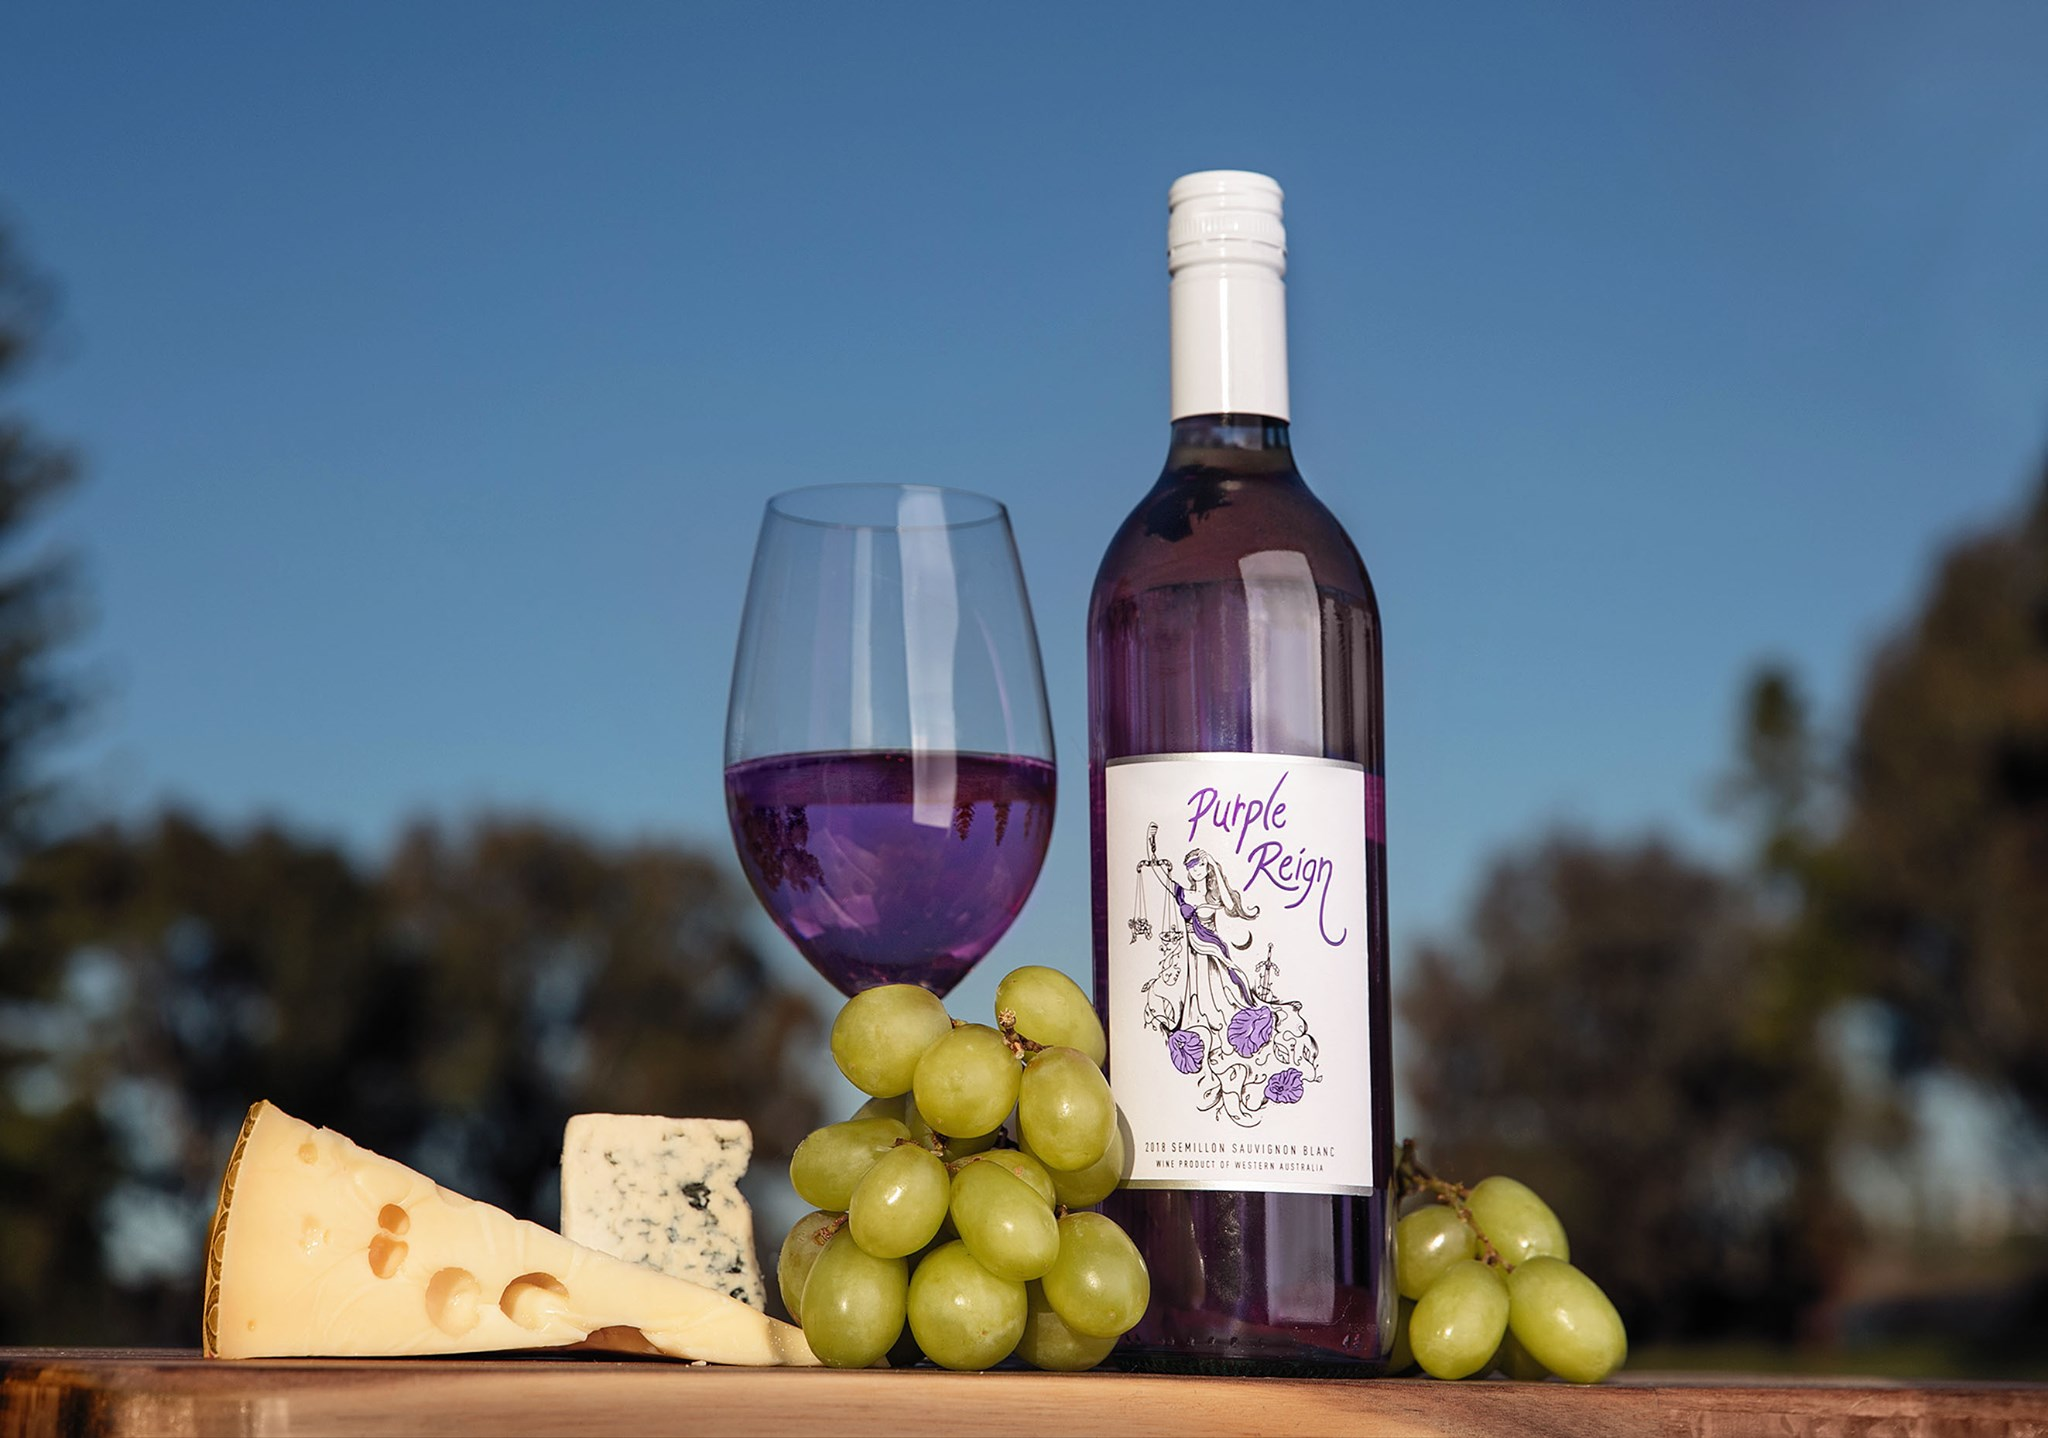 World's first 'purple wine' expands range - Decanter